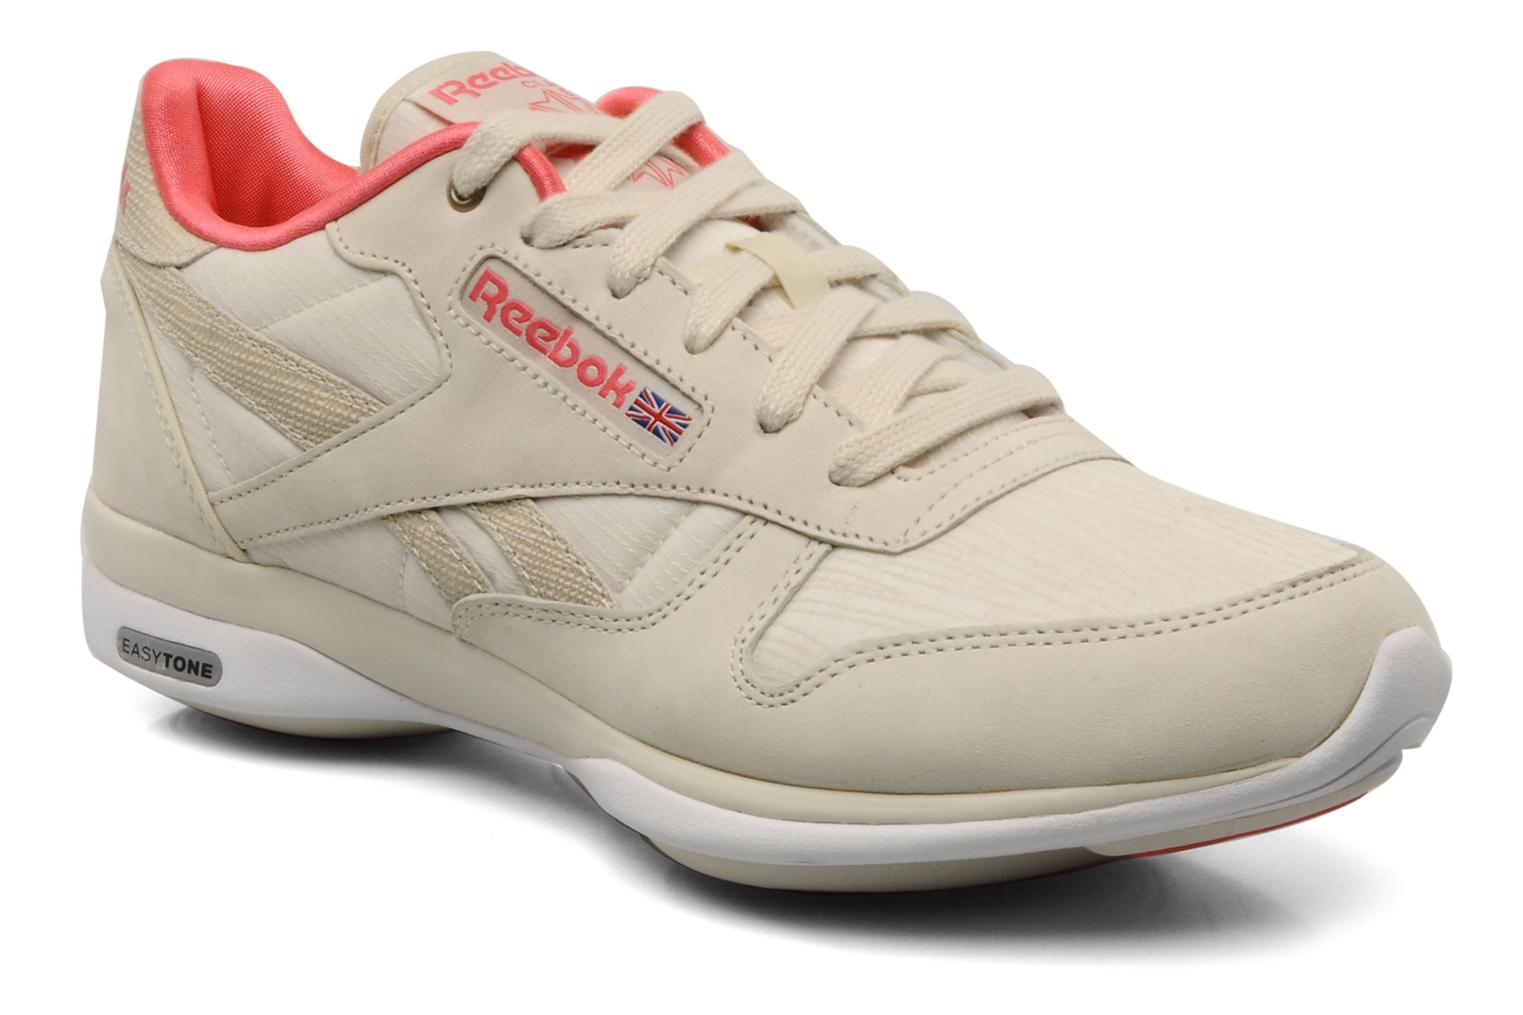 Easytone CL Leather Paperwhite-Smart Pink-White-Champagne